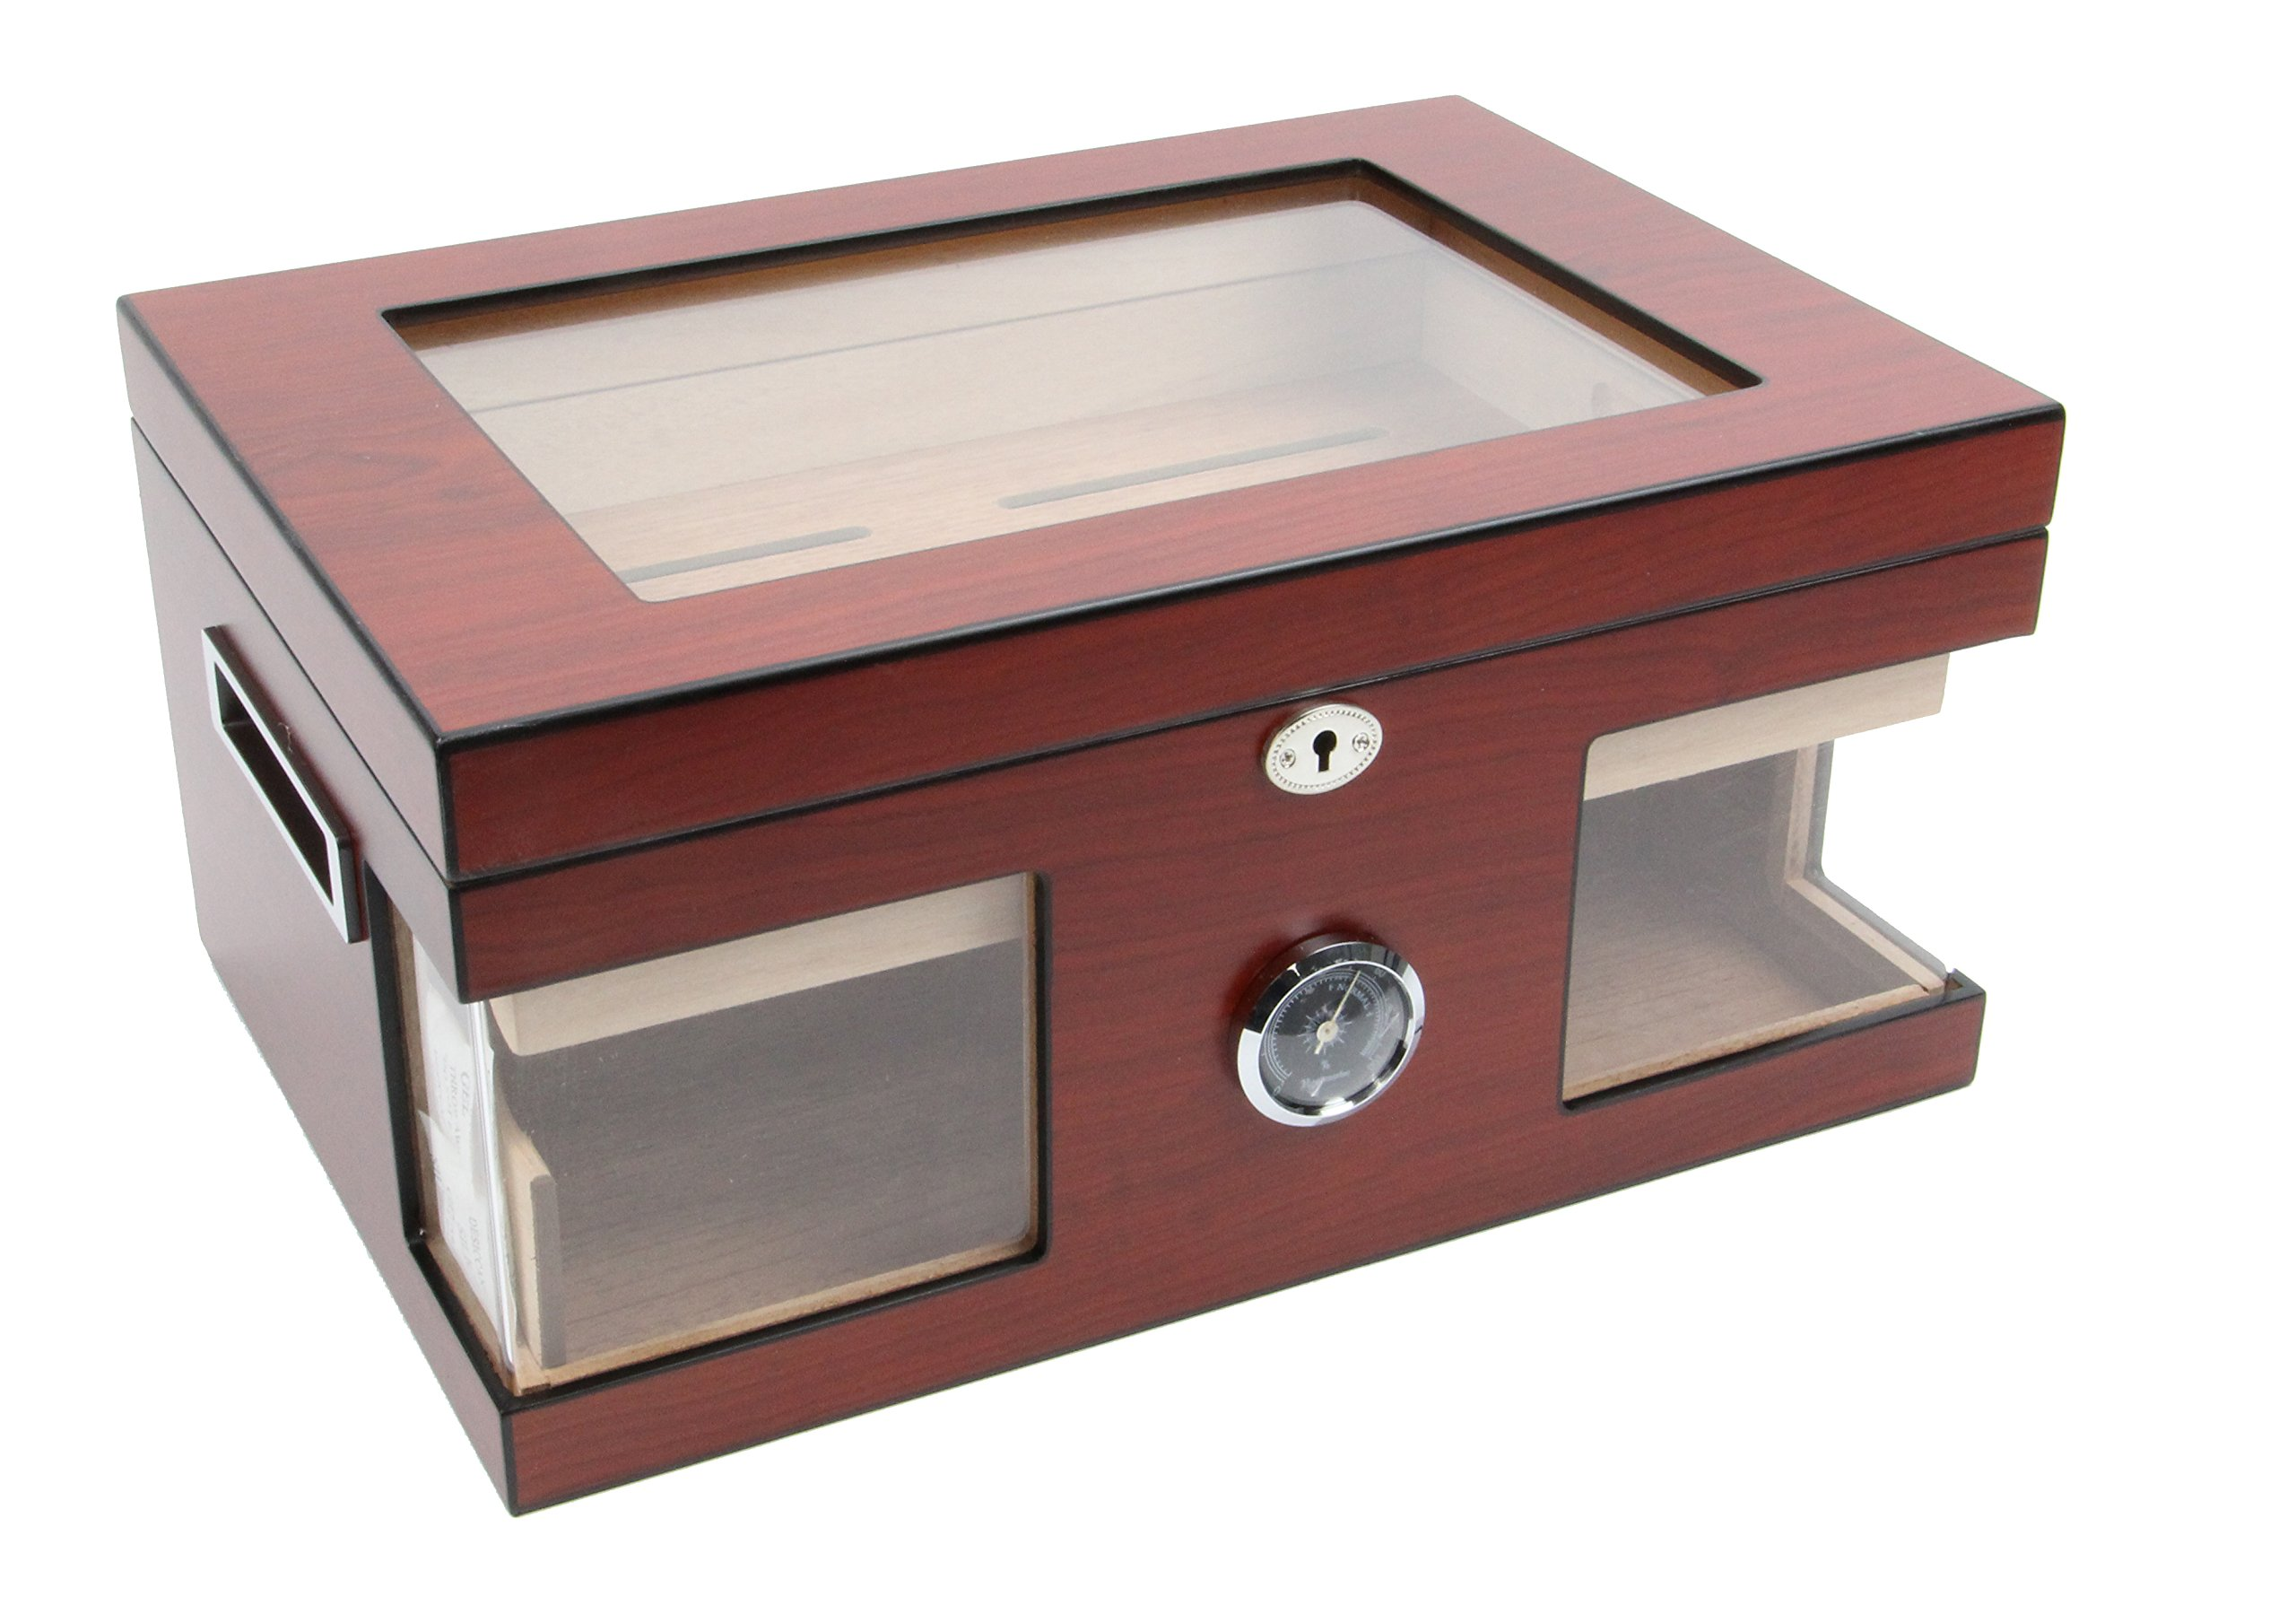 Decorebay SAVOY Executive Boveda Humidor by decore Bay (Image #2)